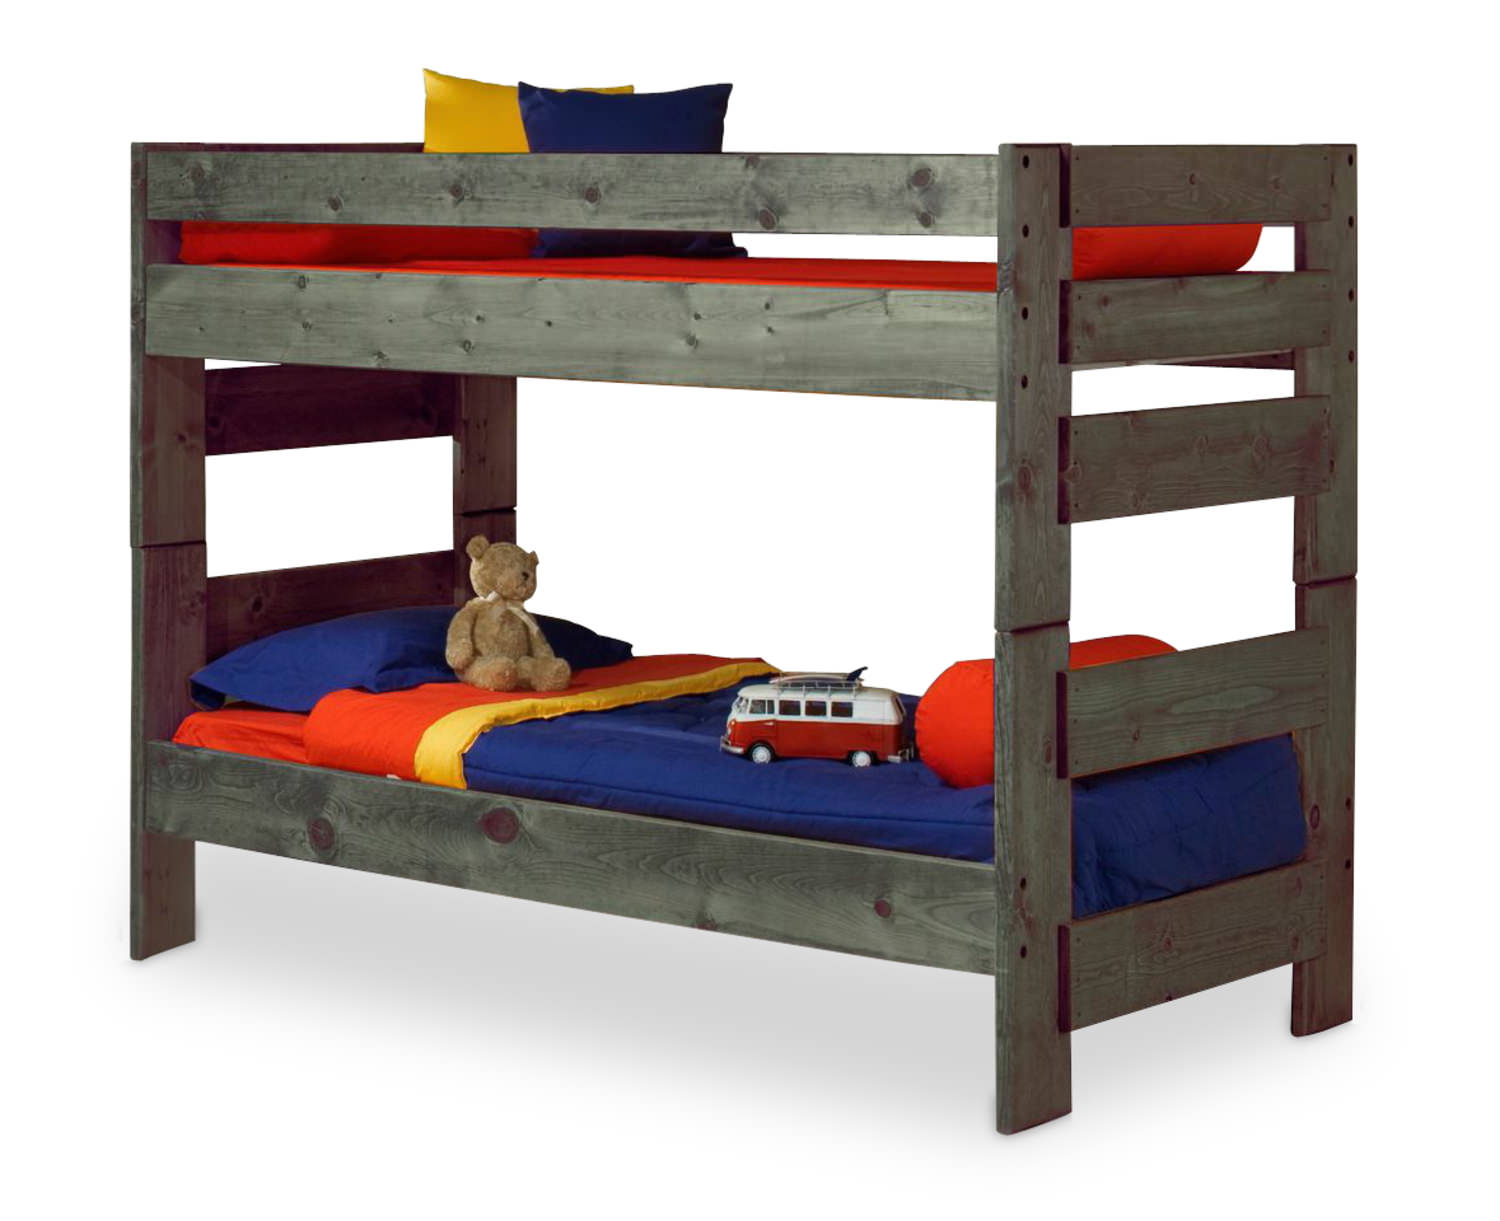 Sleep Concepts Mattress Futon Factory Amish Rustics: Wrangler Twin Over Twin Bunk Bed - Driftwood Finish